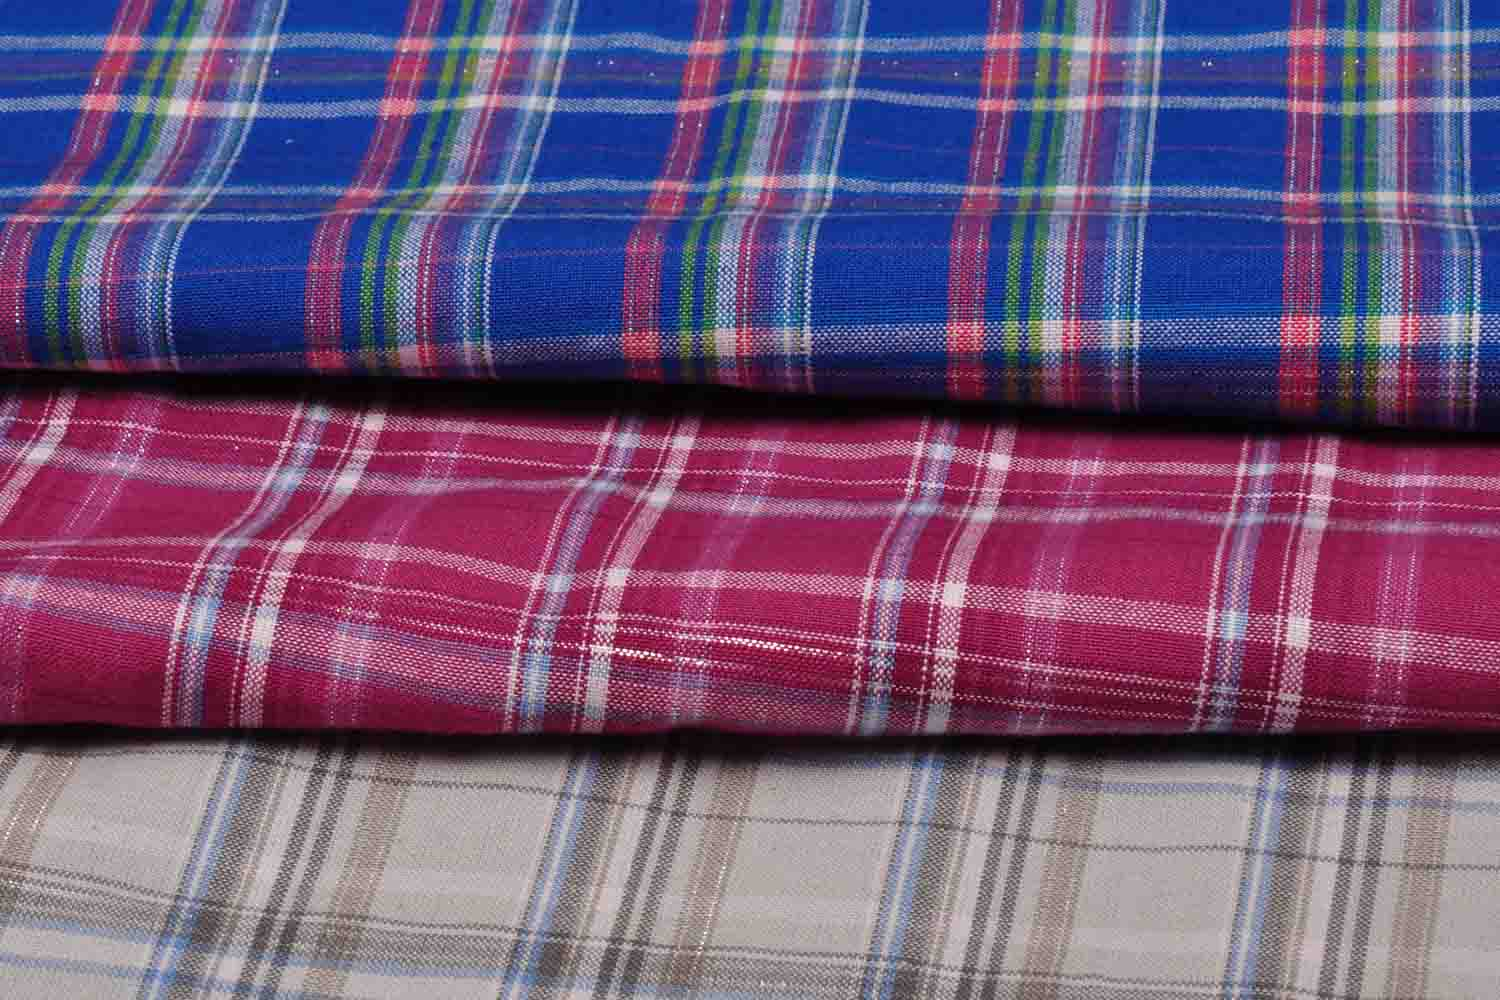 Fabric Traders supplies high quality fabrics and textiles